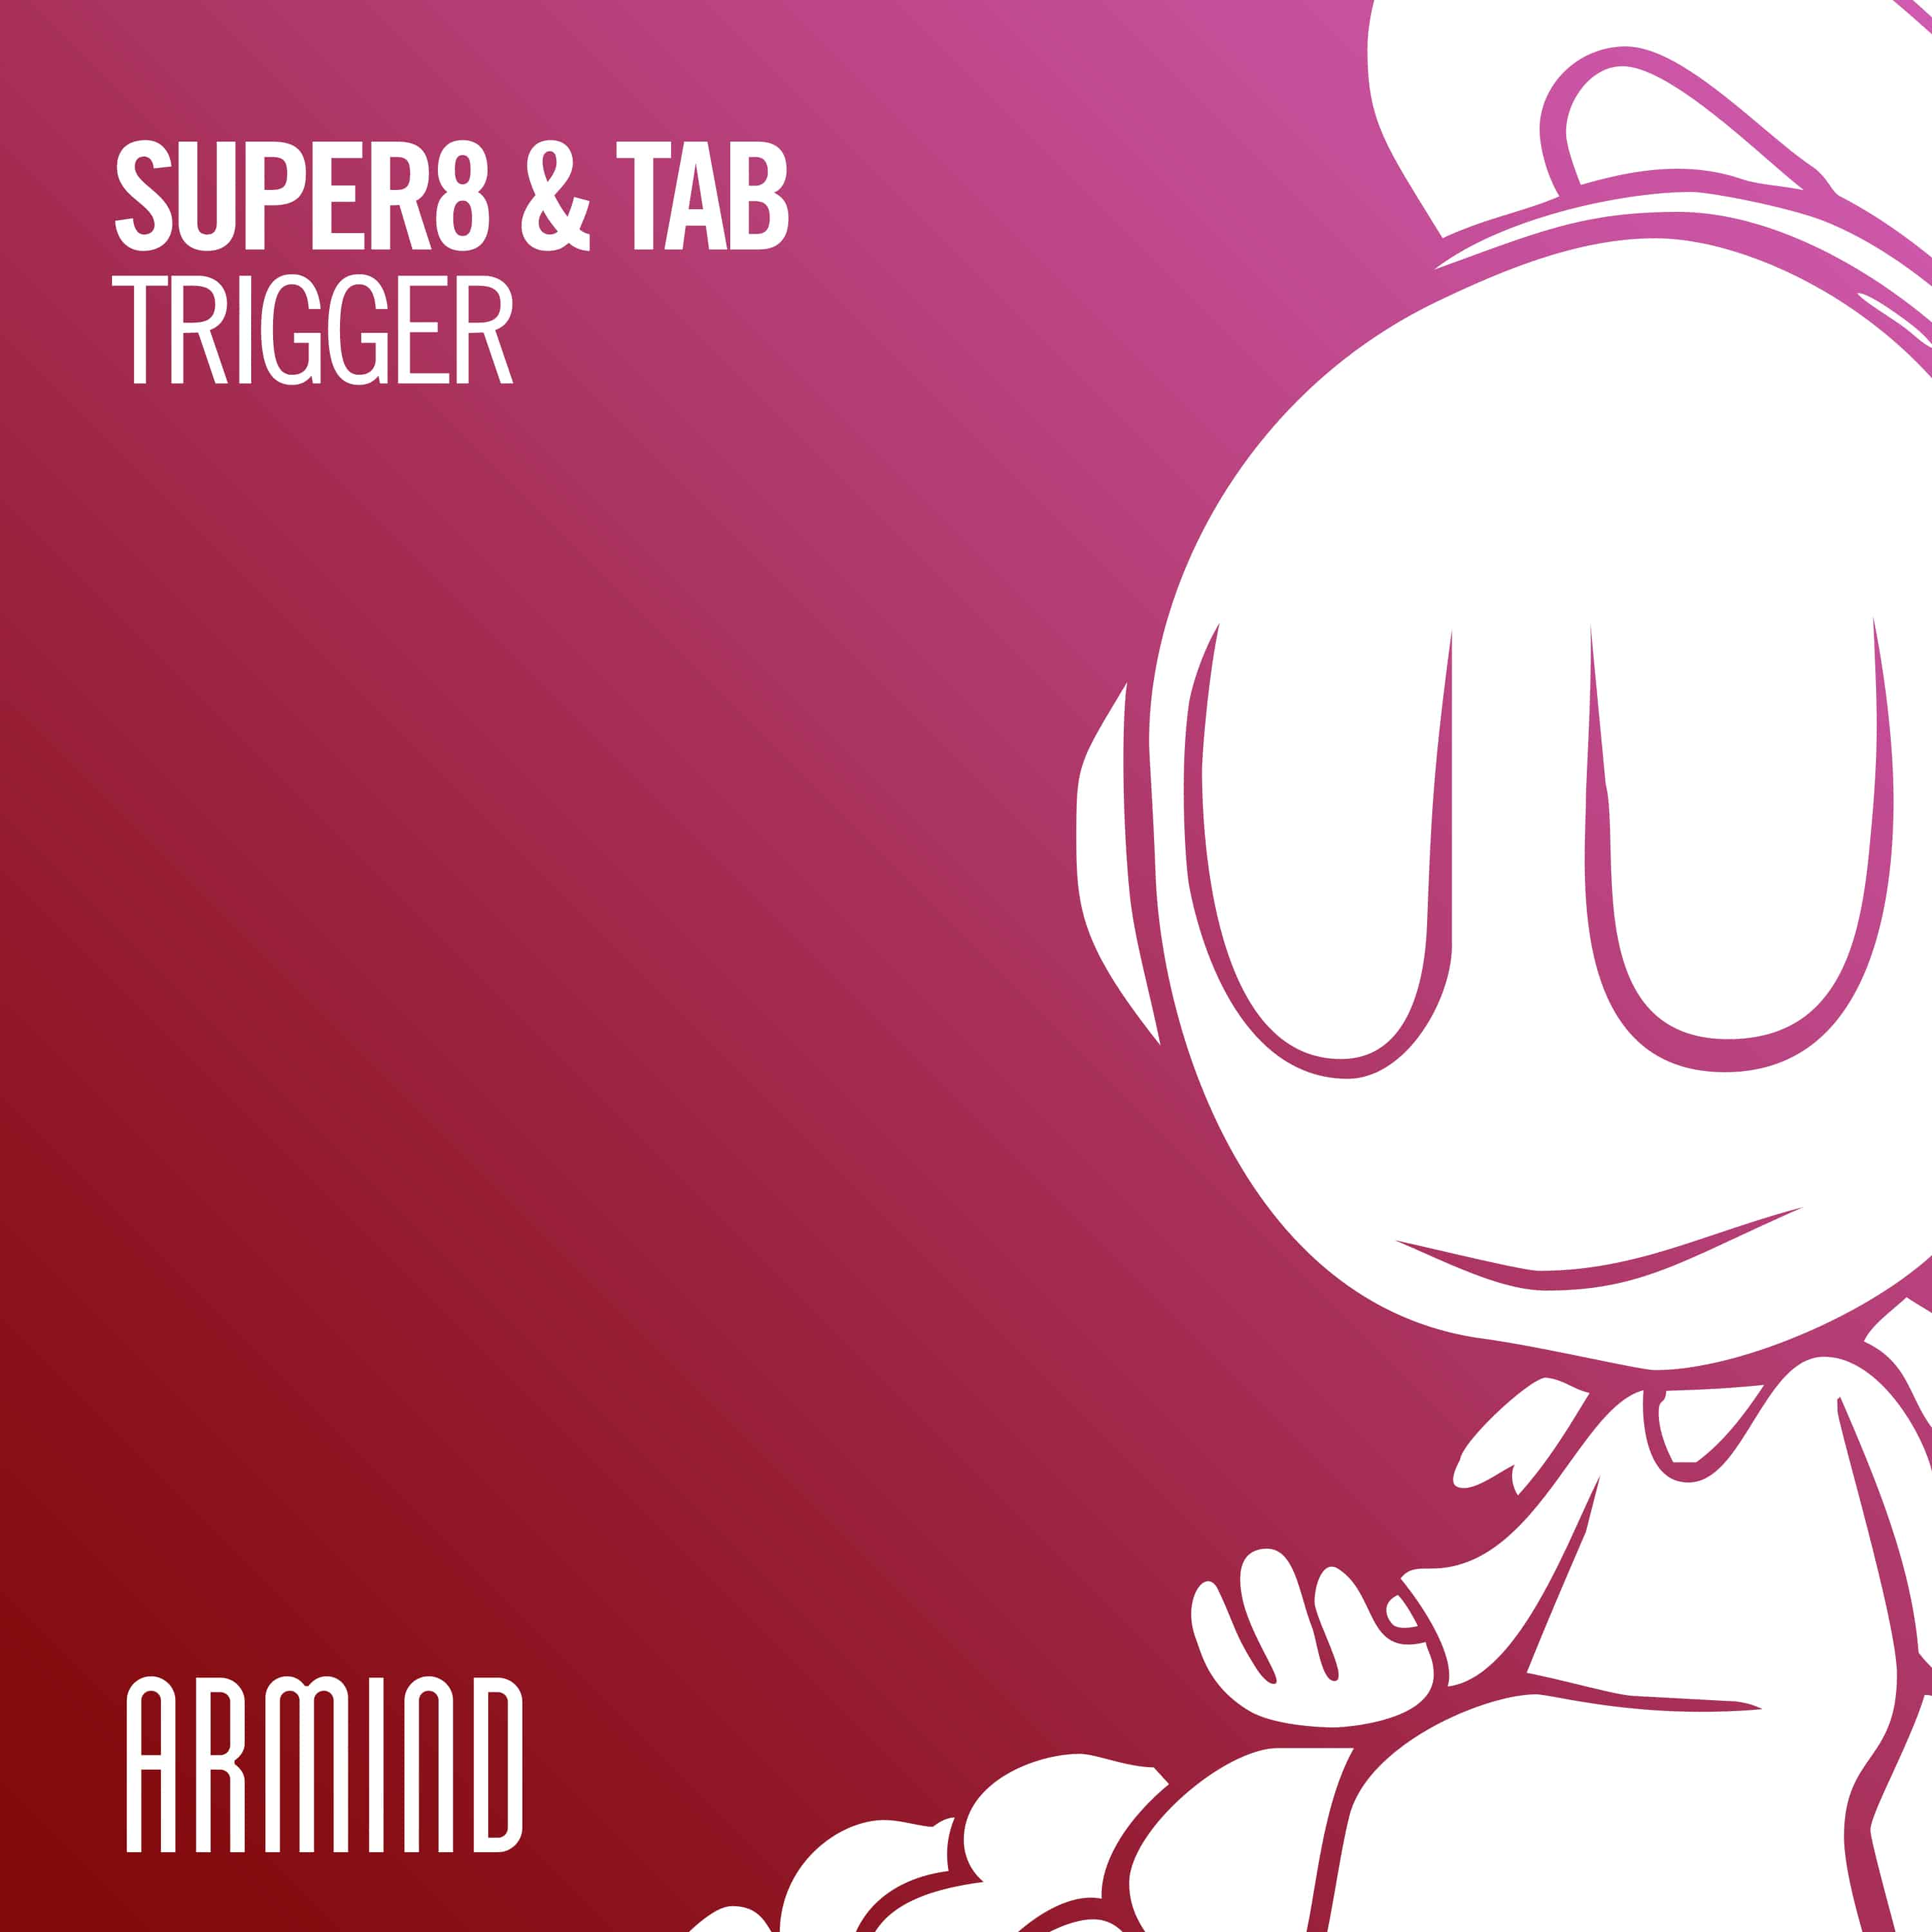 Super8 & Tab bang out another high-quality production: 'Trigger'